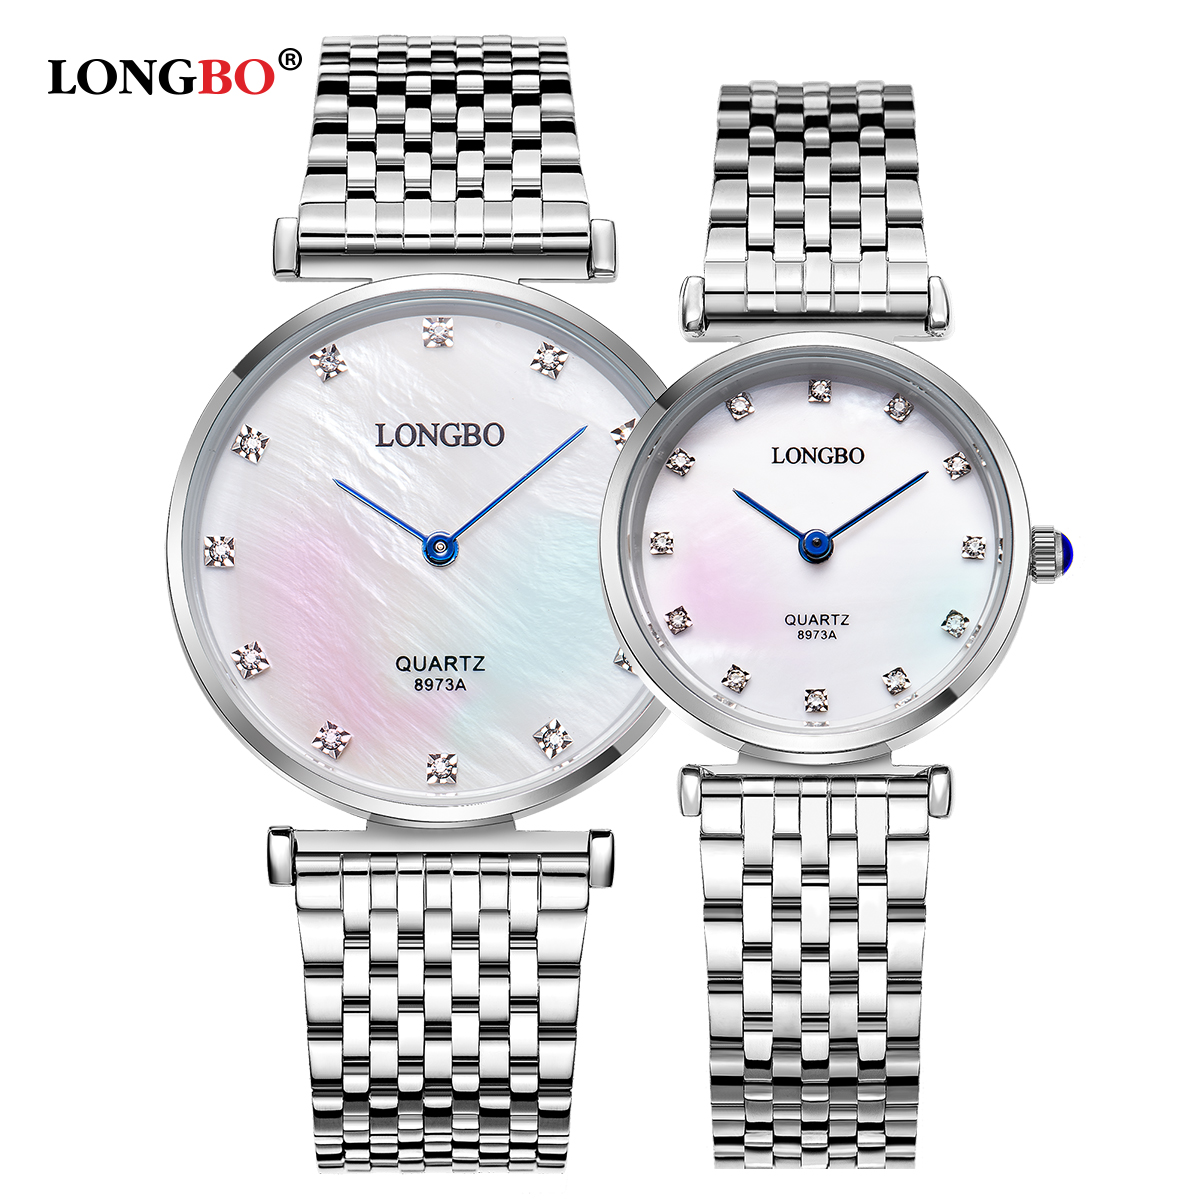 Fashion Longbo Luxurybrandclassic Couples Watches Business Style Lovers Men Women Clock Quartz Charms Analog Wristwatches 8973a|Lover's Watches| |  - title=